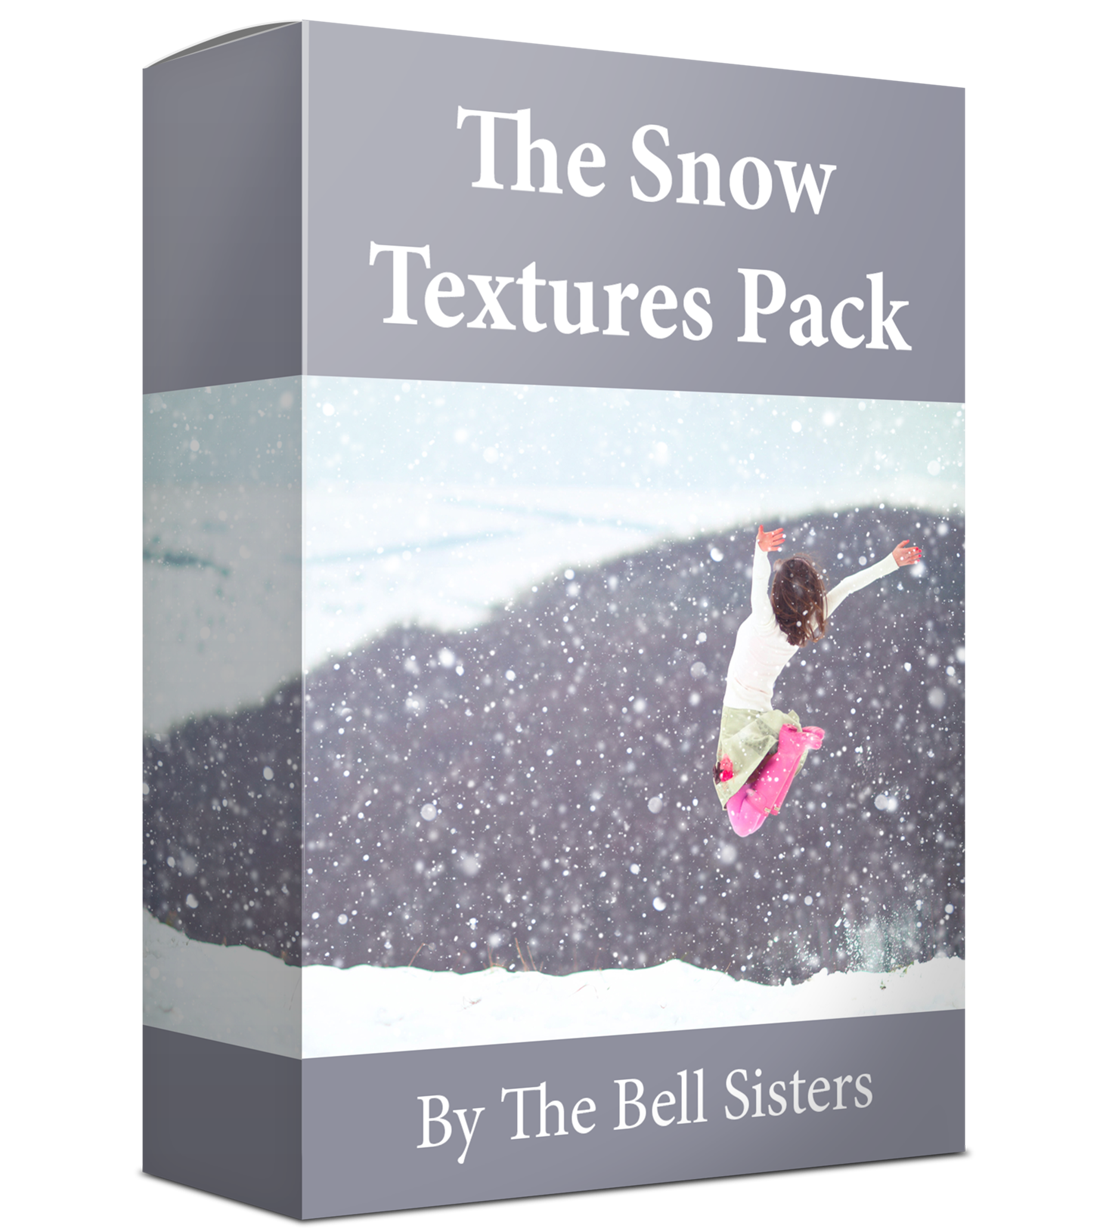 The Snow Textures Pack